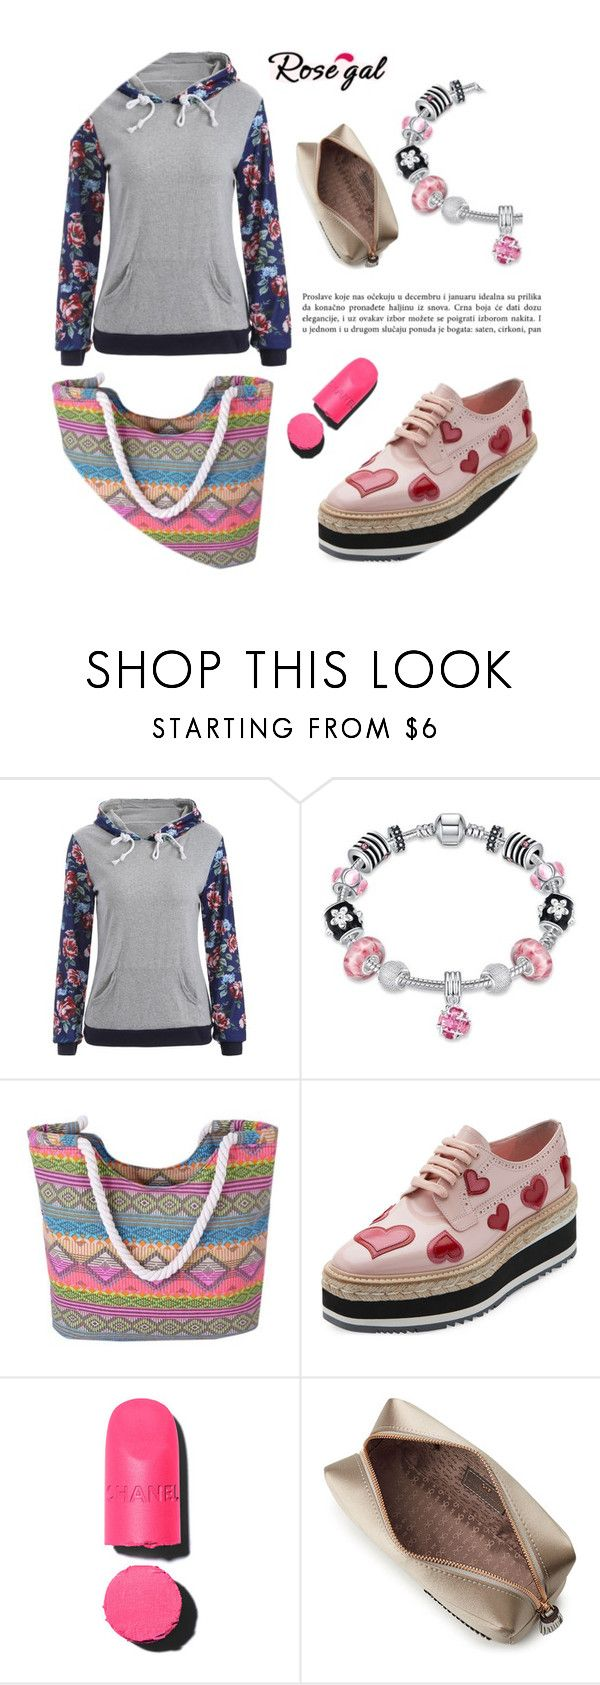 """""""Rosegal"""" by angelstar92 ❤ liked on Polyvore featuring Prada, Chanel, Anya Hindmarch, Spring and circle"""